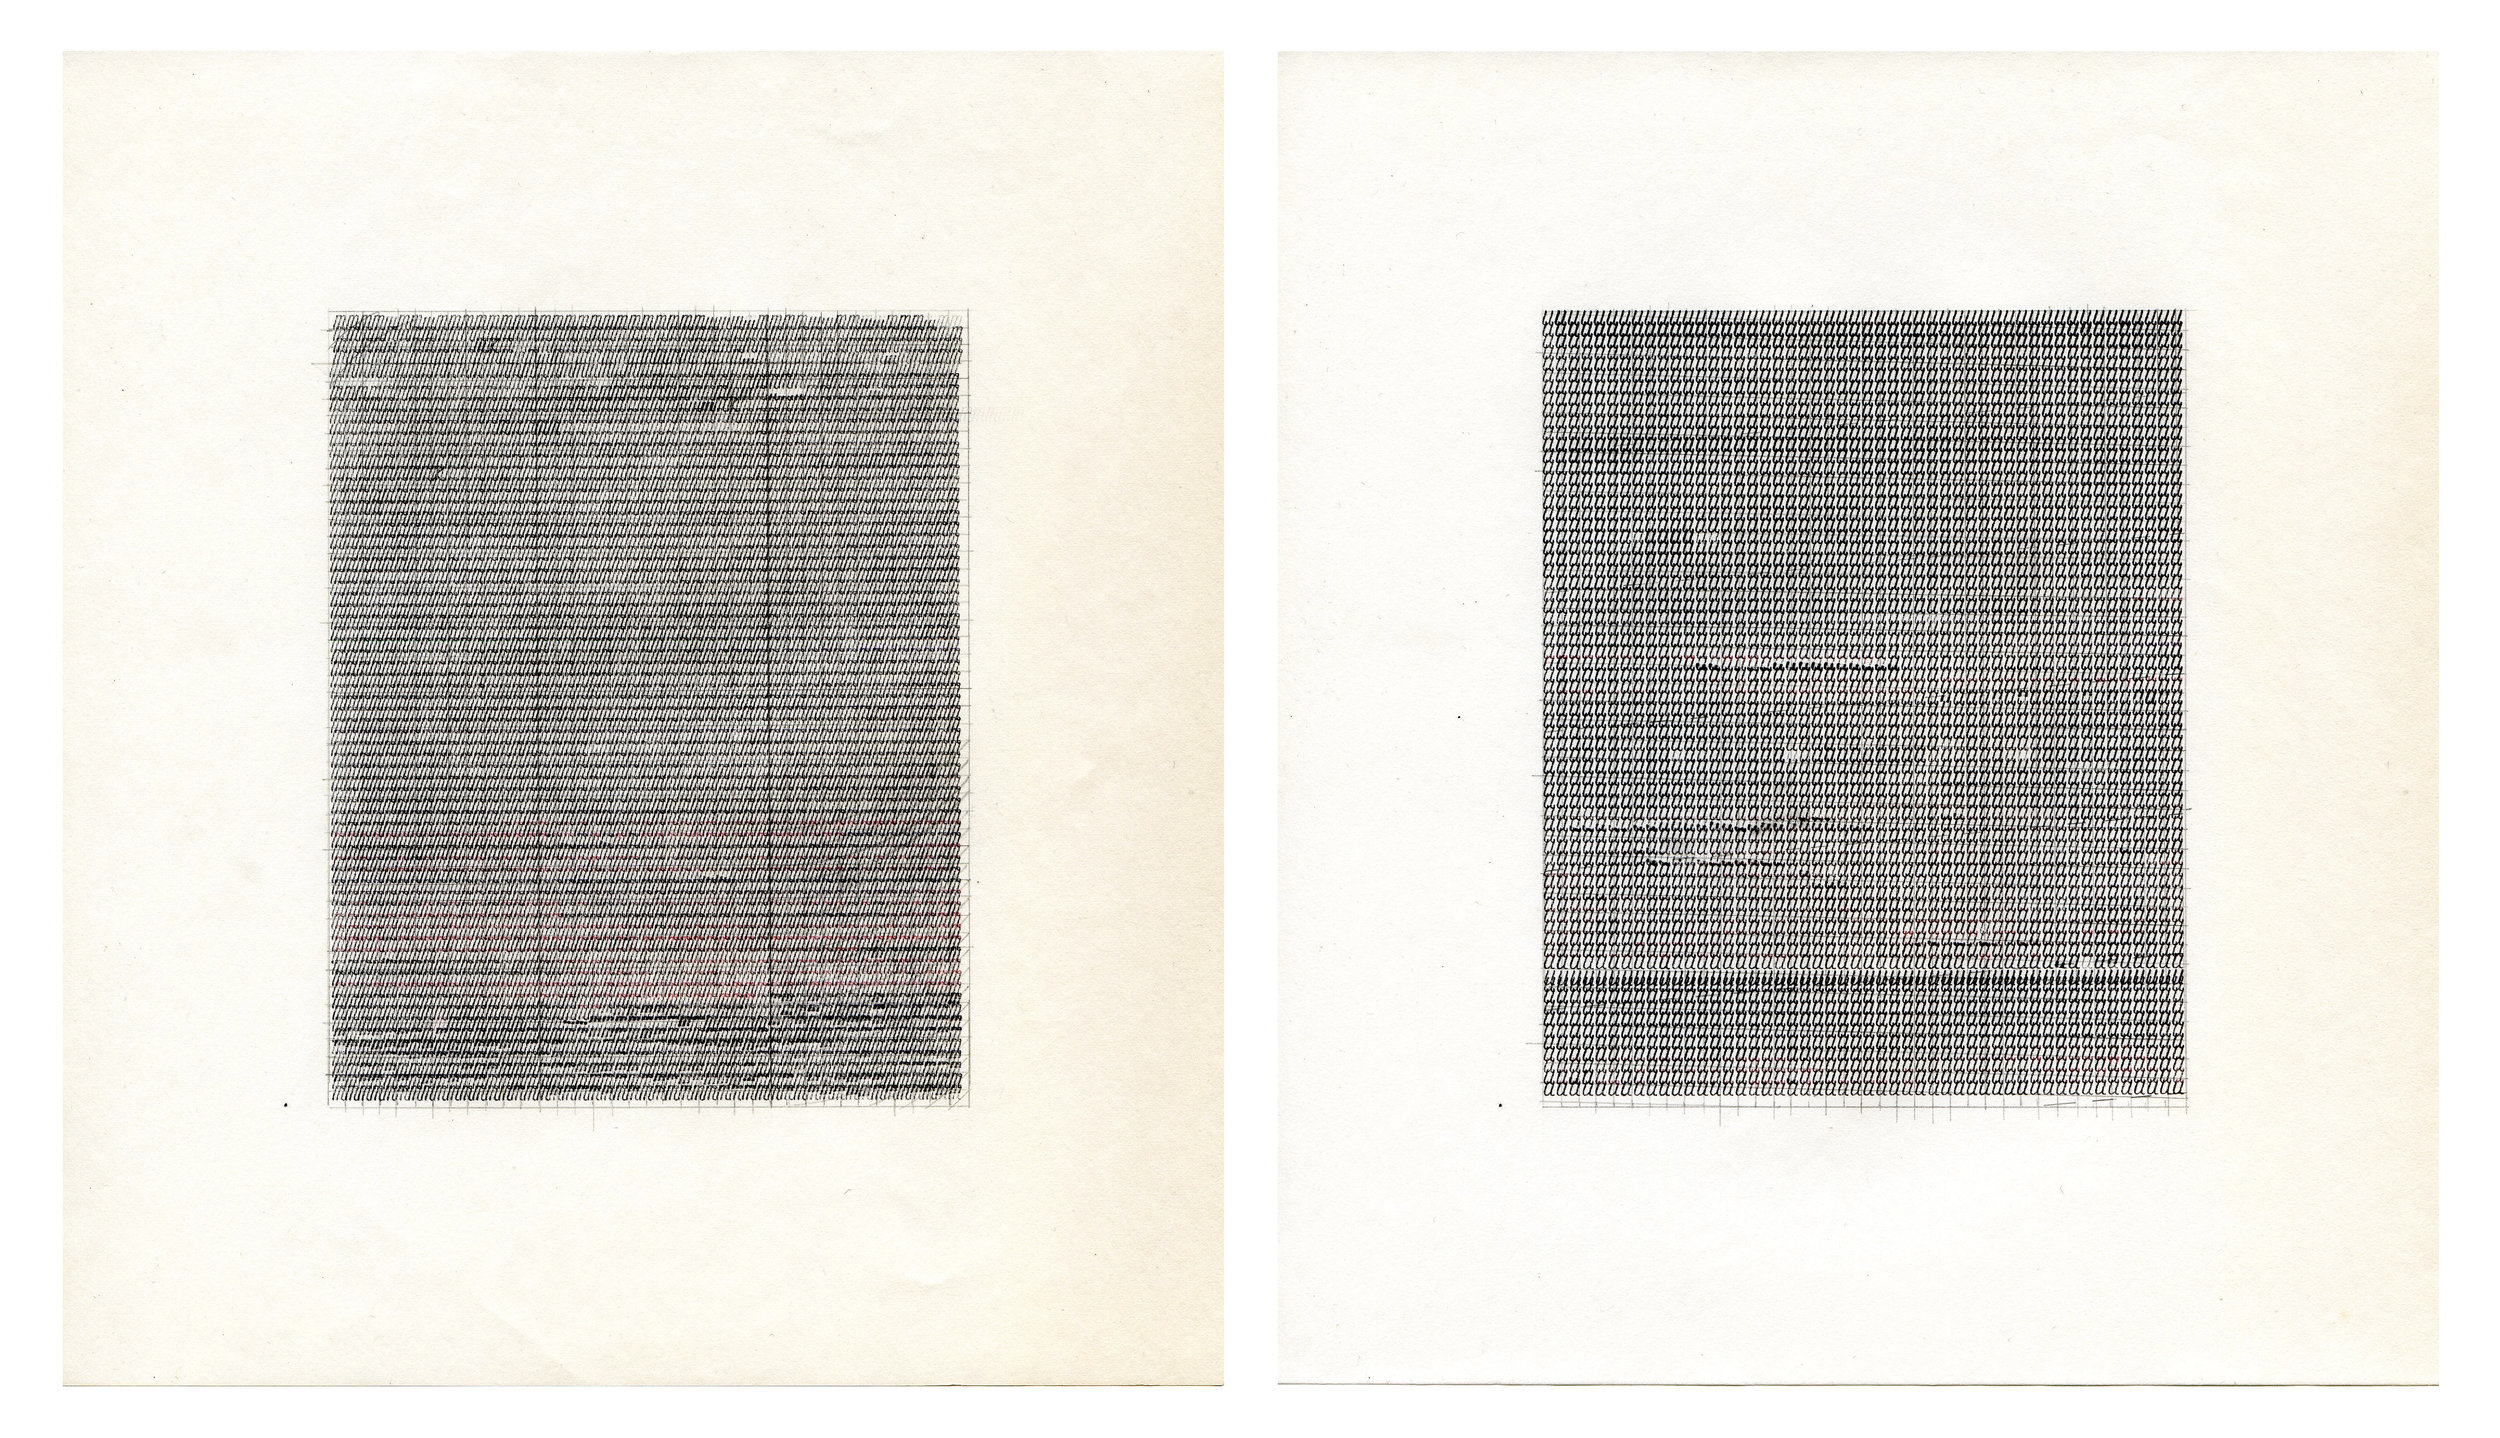 %22M.U.%22 Typewriter ink, pencil on paper 17 x 23 inches.jpg